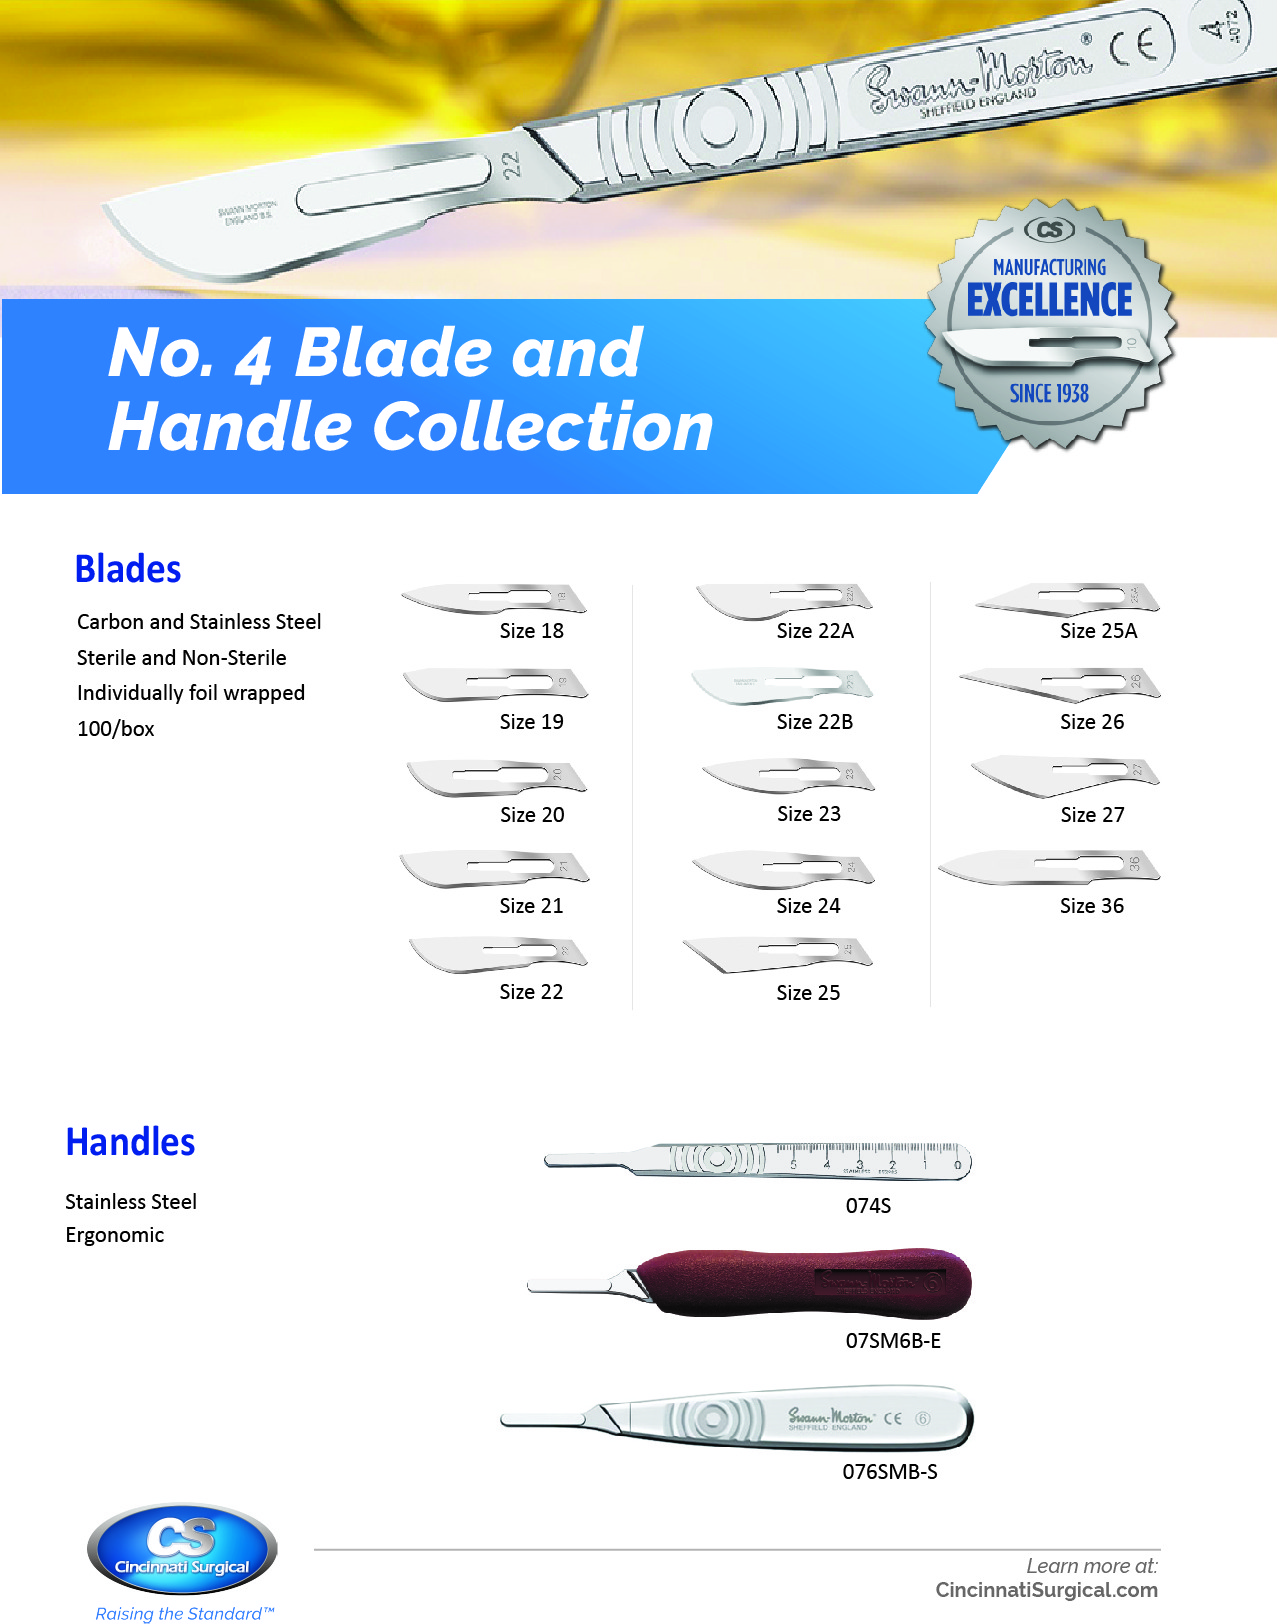 Surgical Blades - No. 4 Fitment